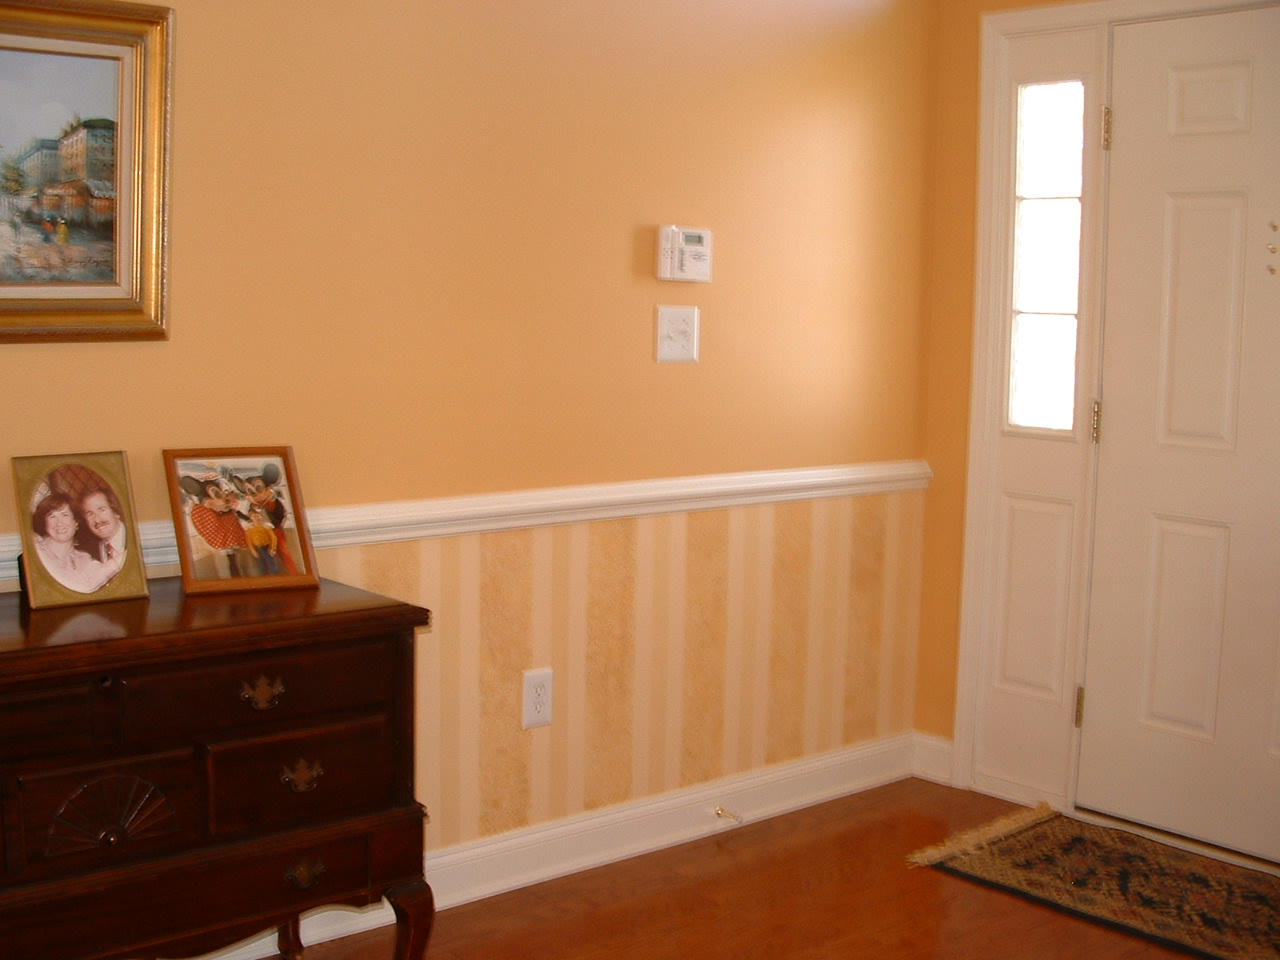 Faux Finishing, Faux Painting Central NJ, Freehold, Colts Neck, Jackson,  Marlboro, Manalapan, Brick, Toms River Part 71